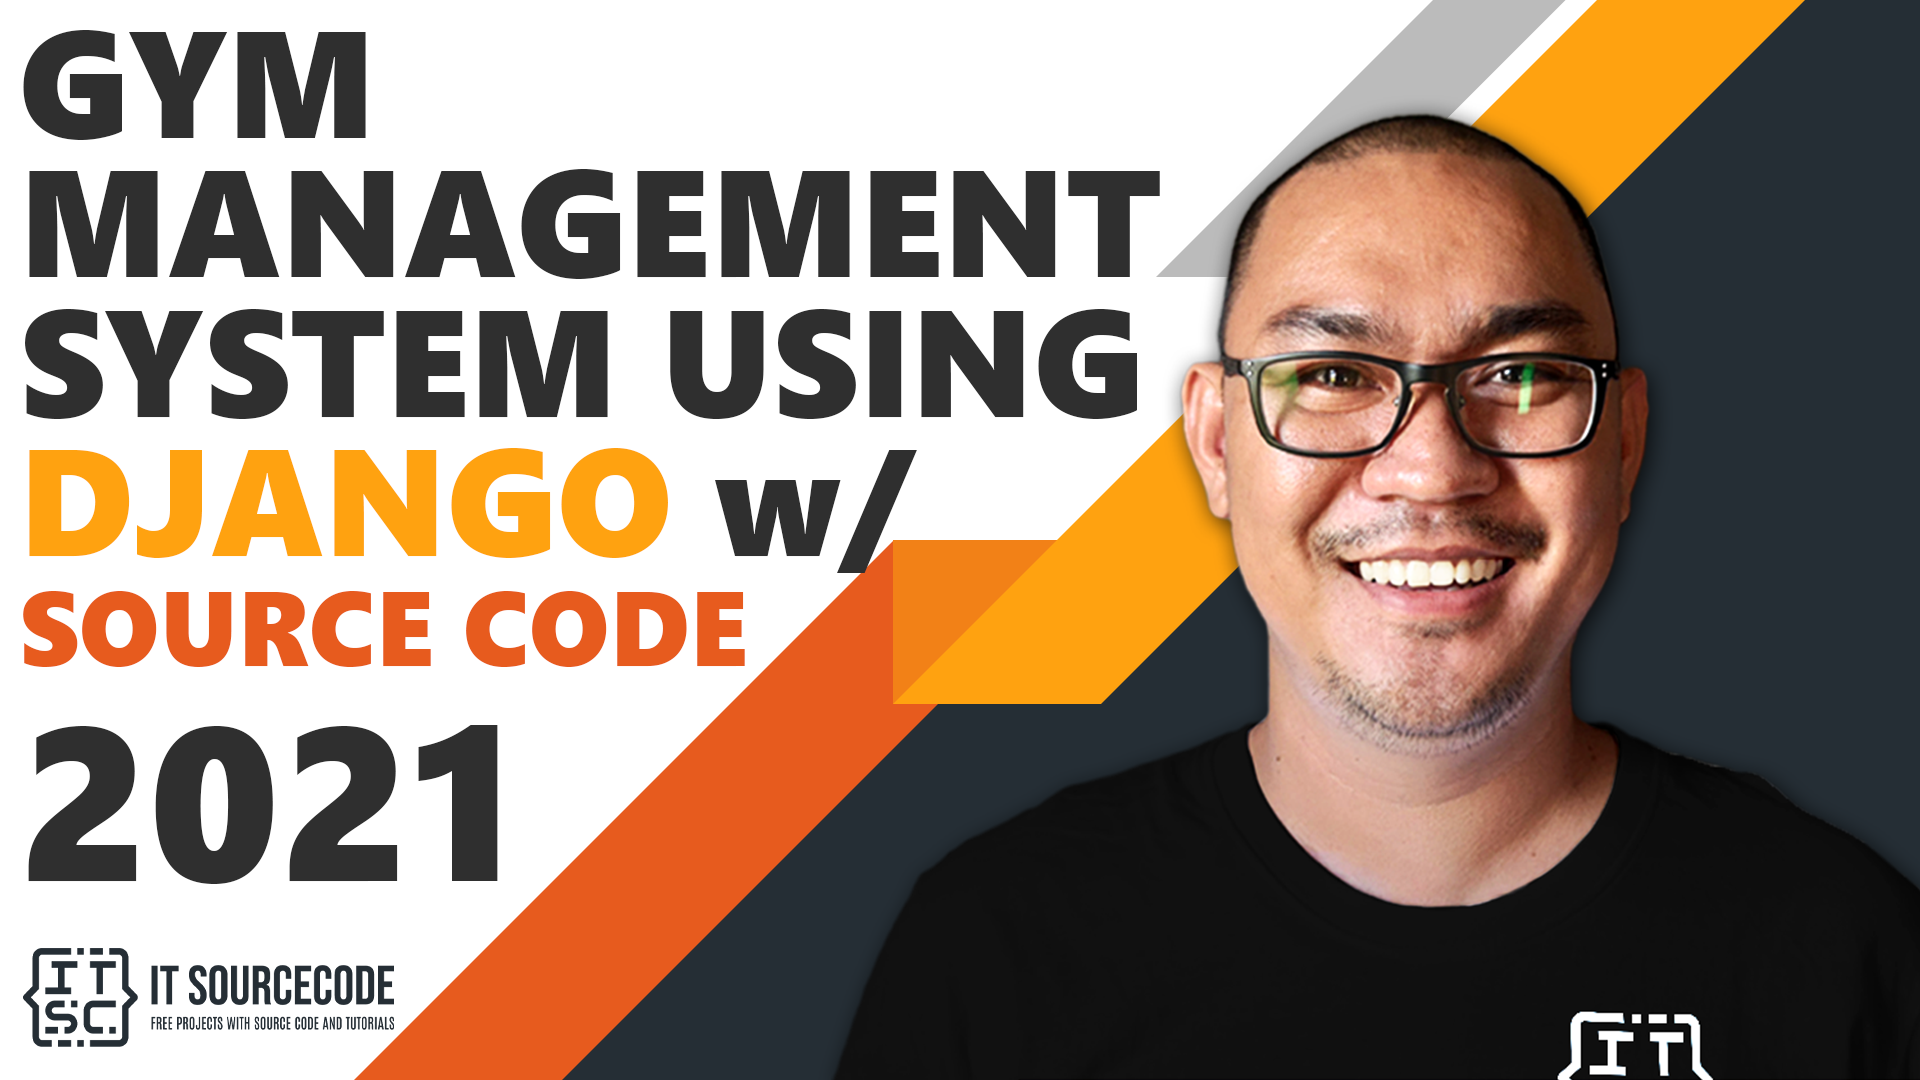 Gym Management System Using Django with Source Code 2021